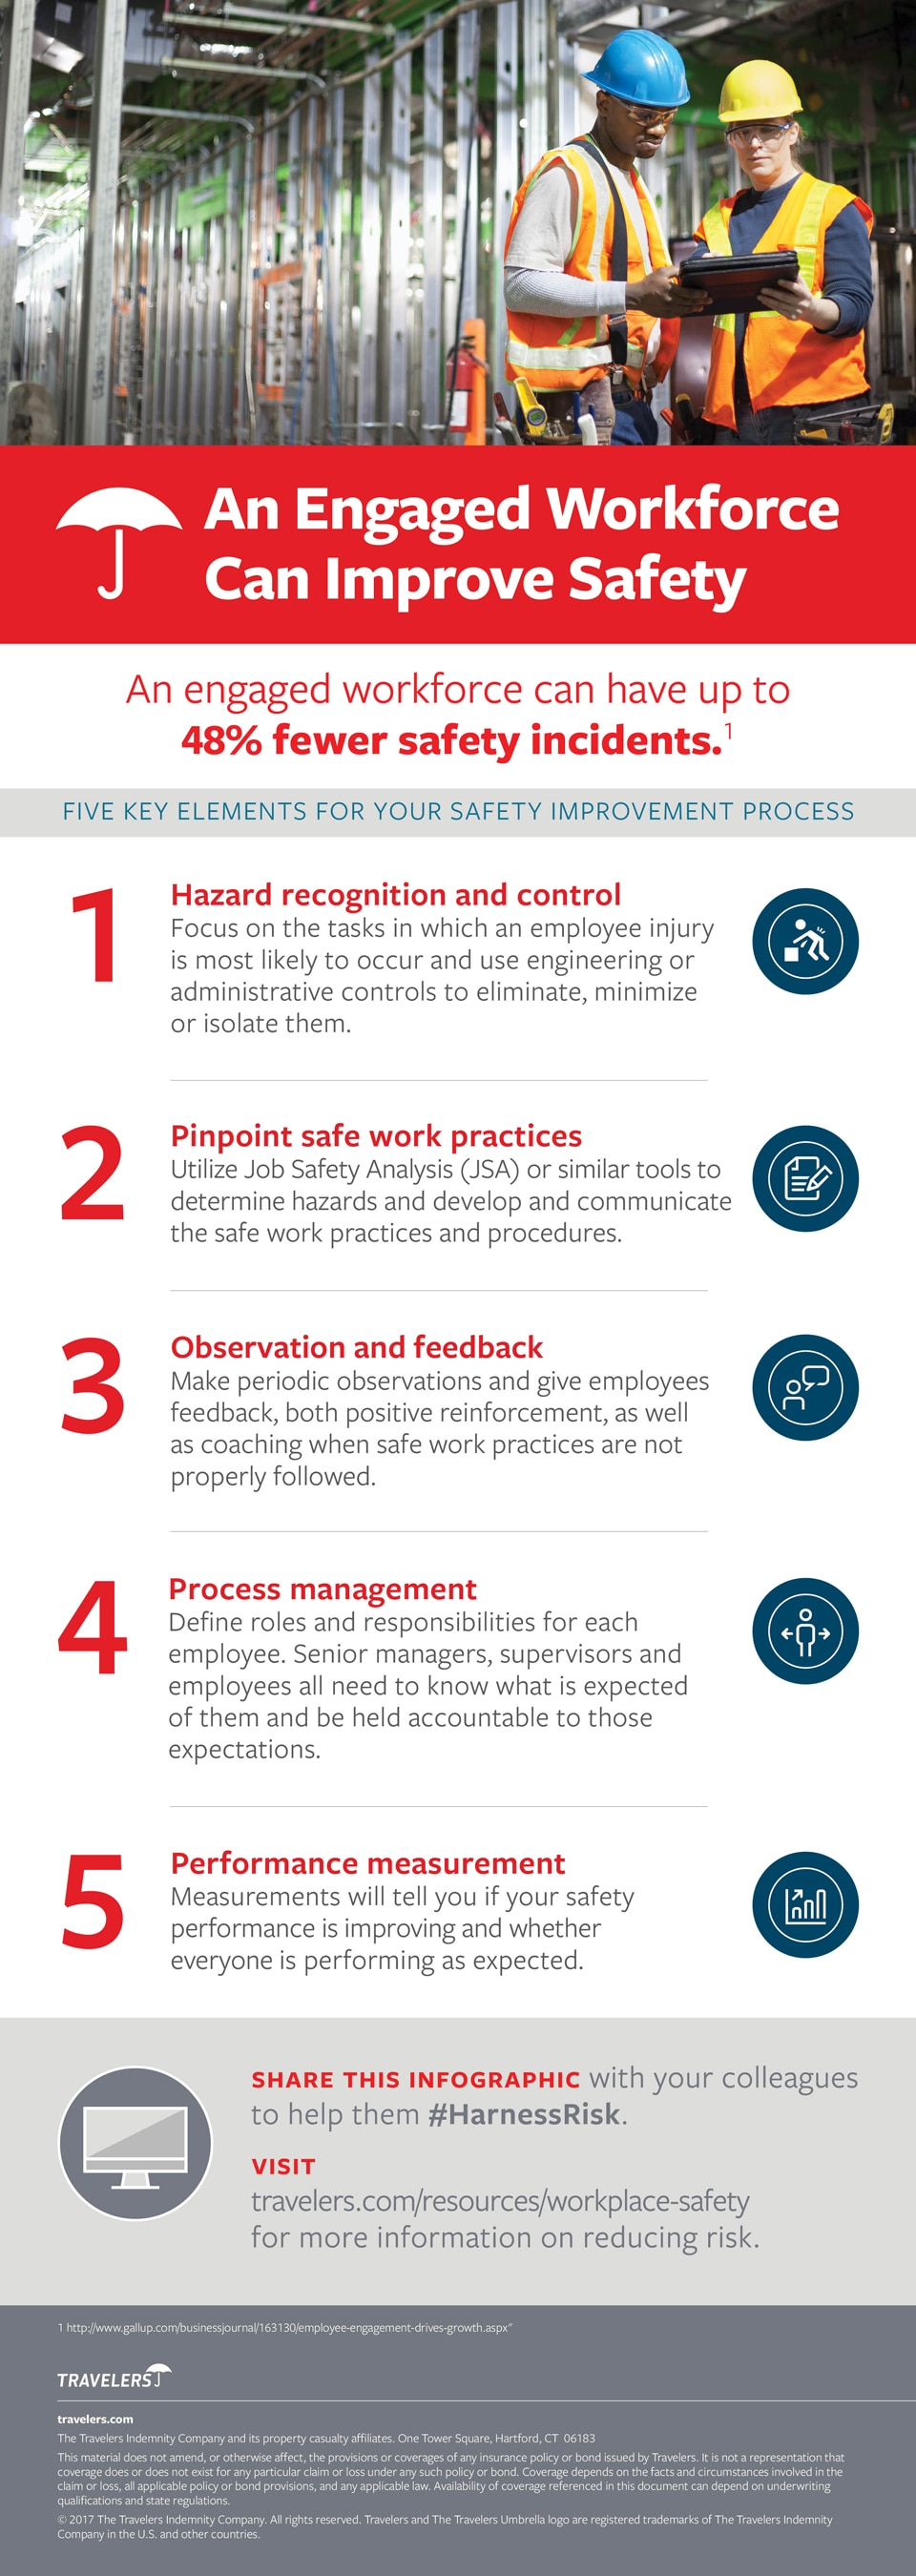 An Engaged Workforce Can Improve Safety [Infographic]